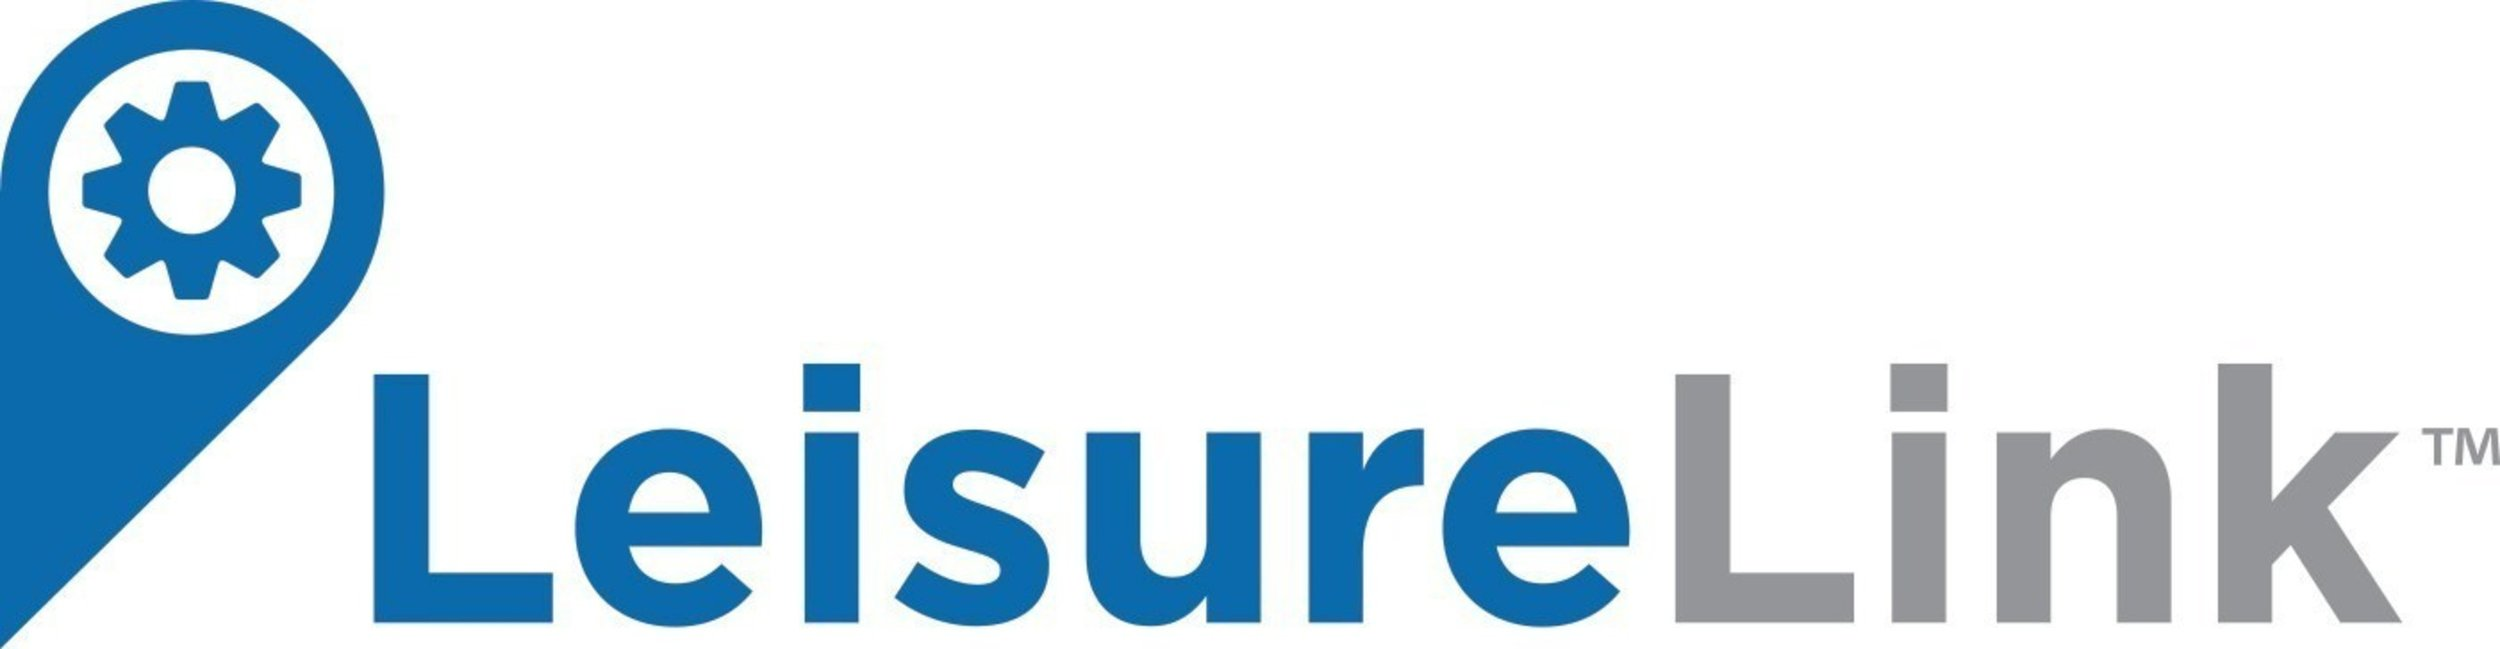 Leisure-Link-Logo.jpg